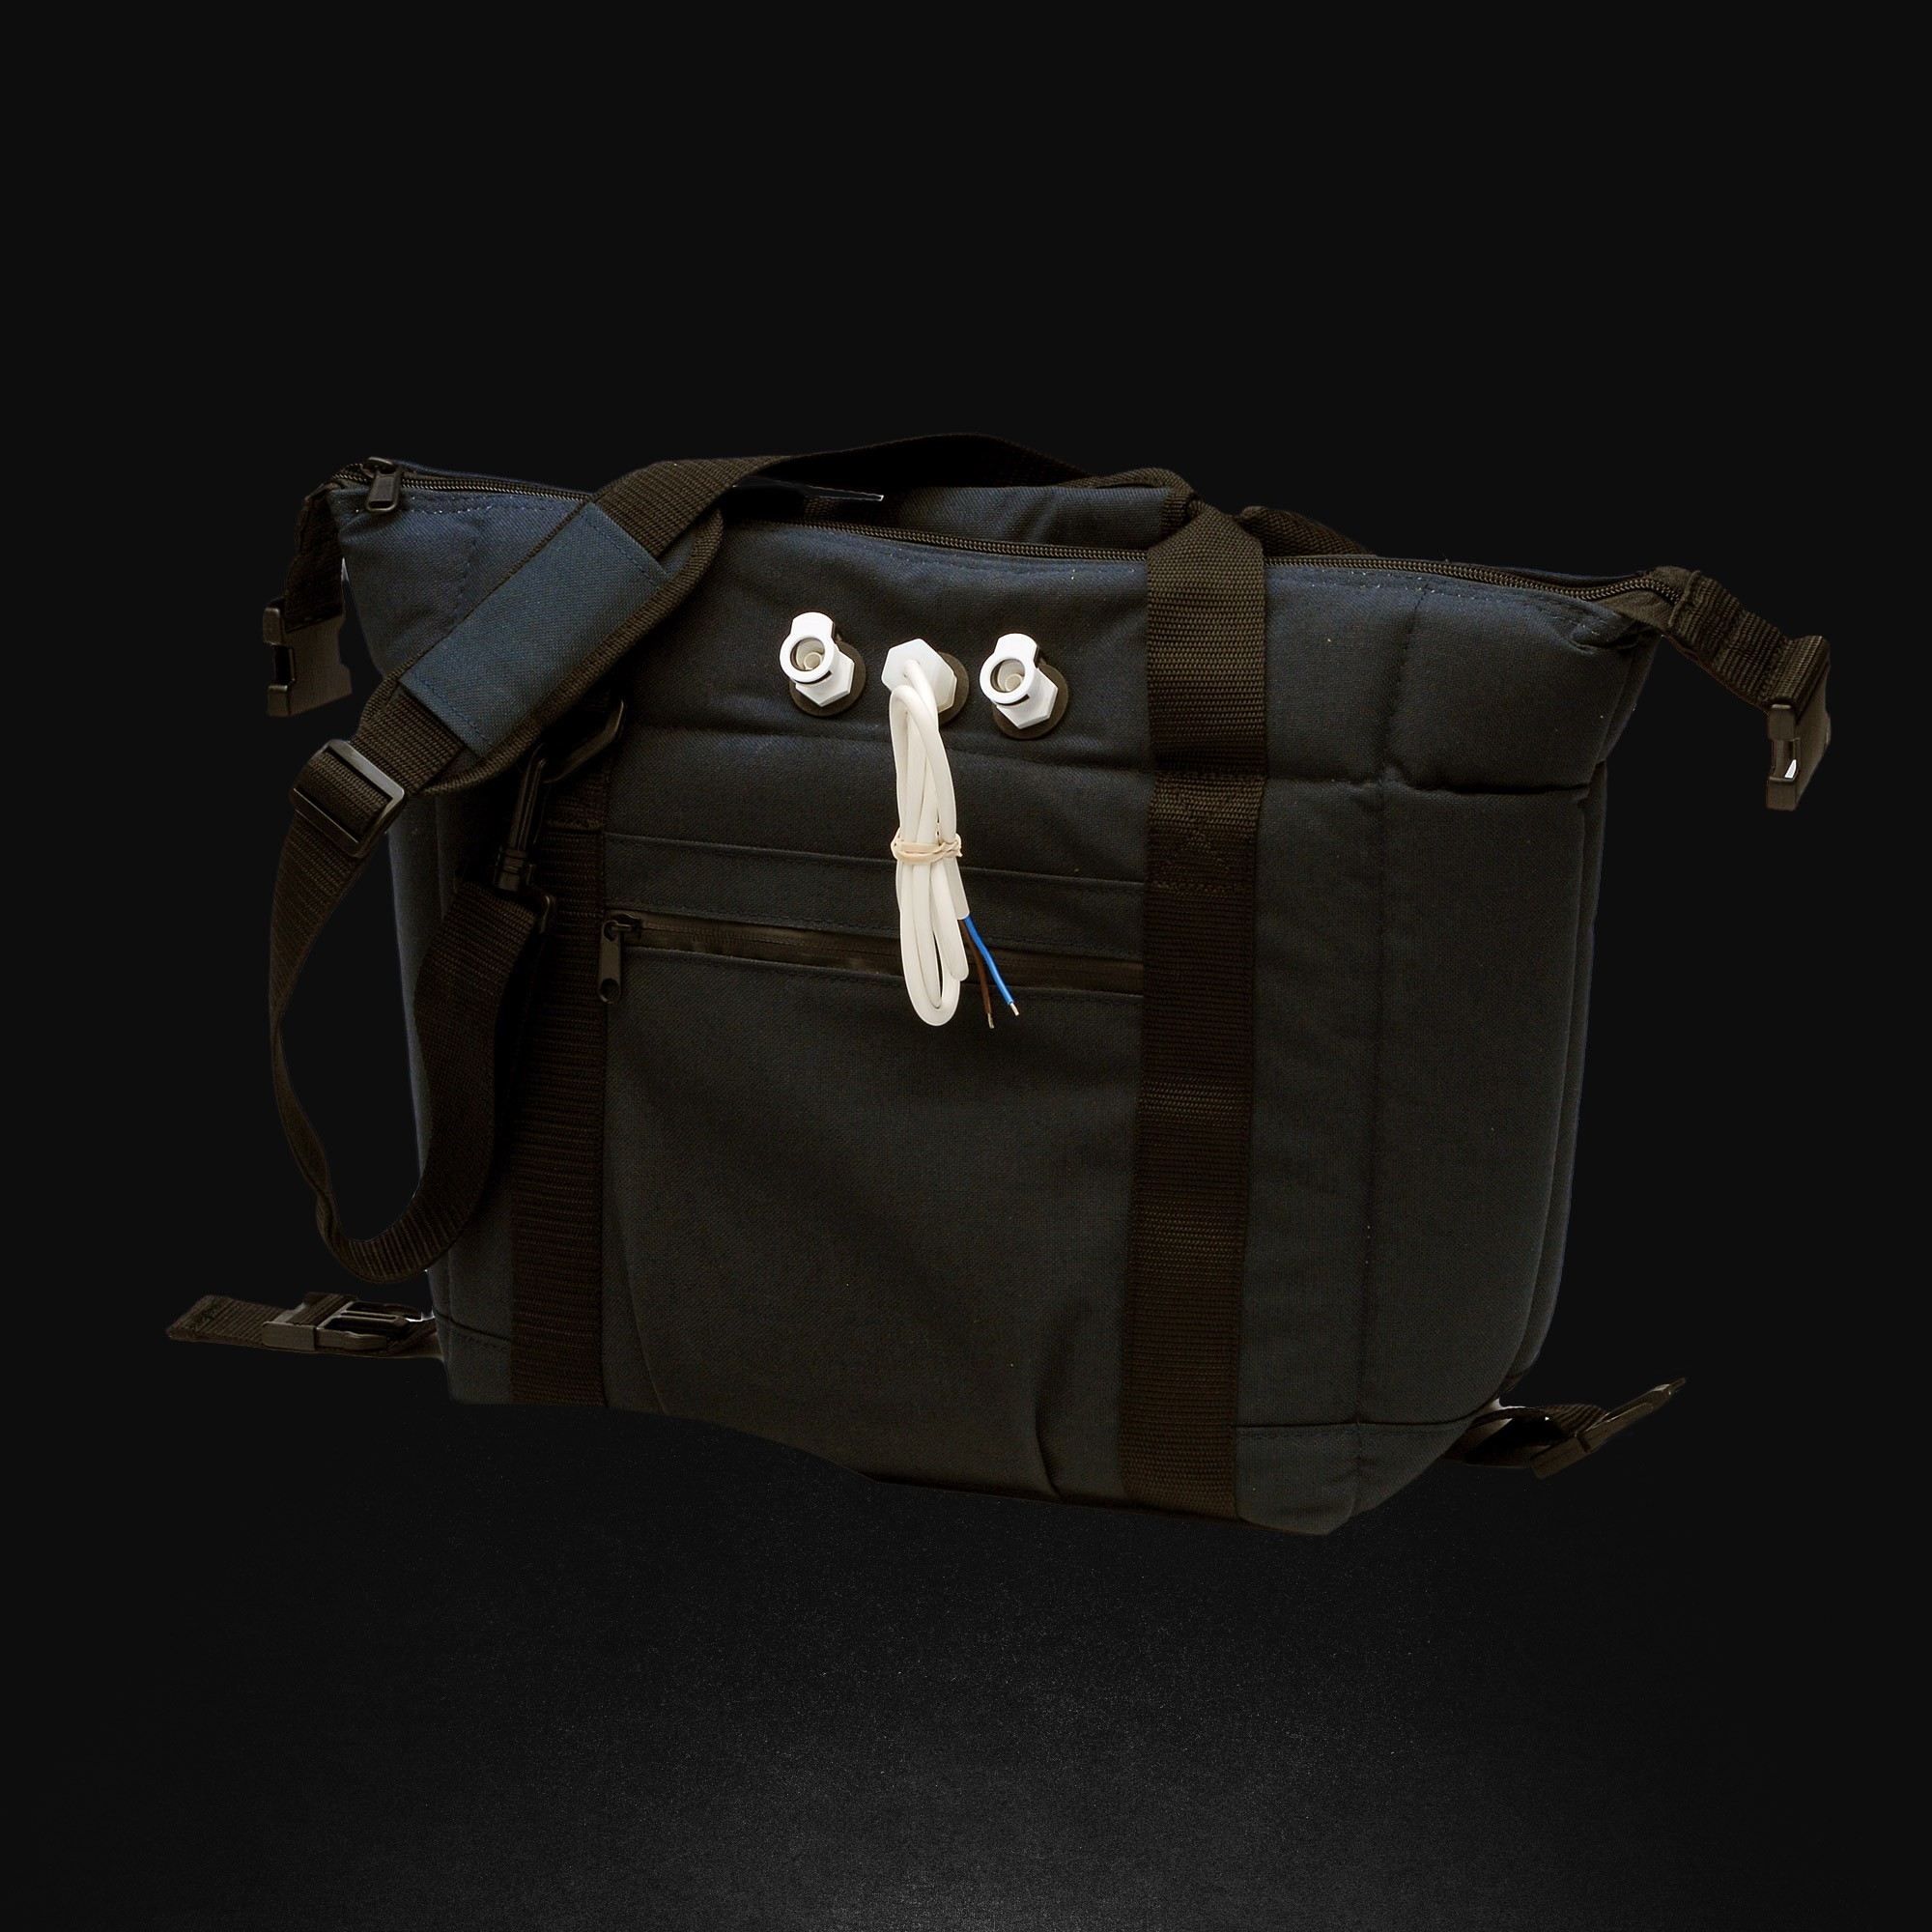 Racing underwear accessories - COOL SHIRT PORTABLE BAG SYSTEM